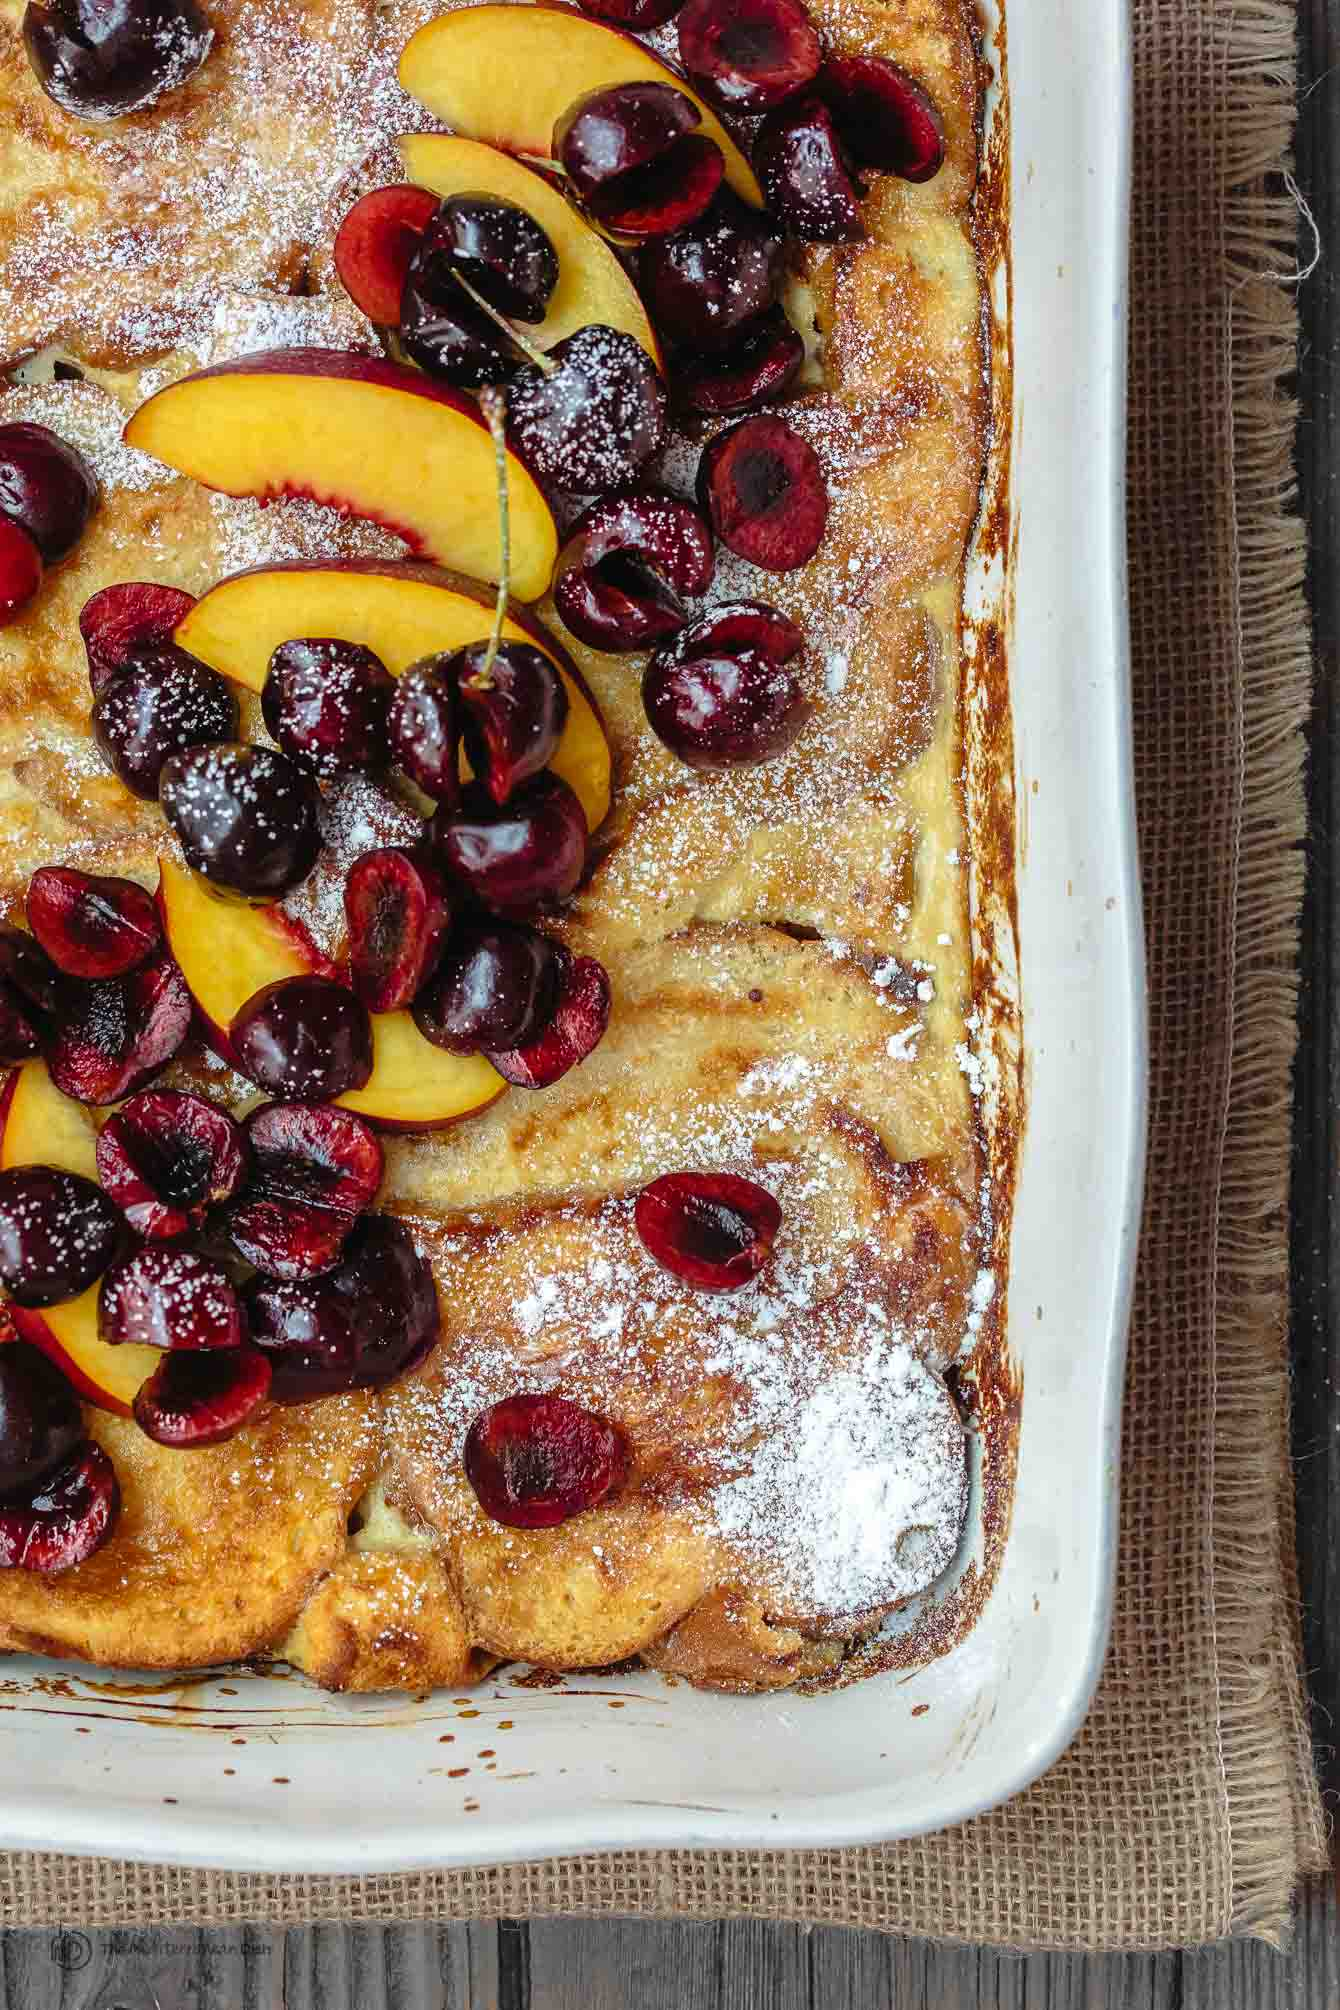 Overnight Baked French Toast Recipe with Challah. Part of 21 Mediterranean Brunch Recipes | The Mediterranean Dish. #christmasbrunch #brunch #mediterraneanrecipes